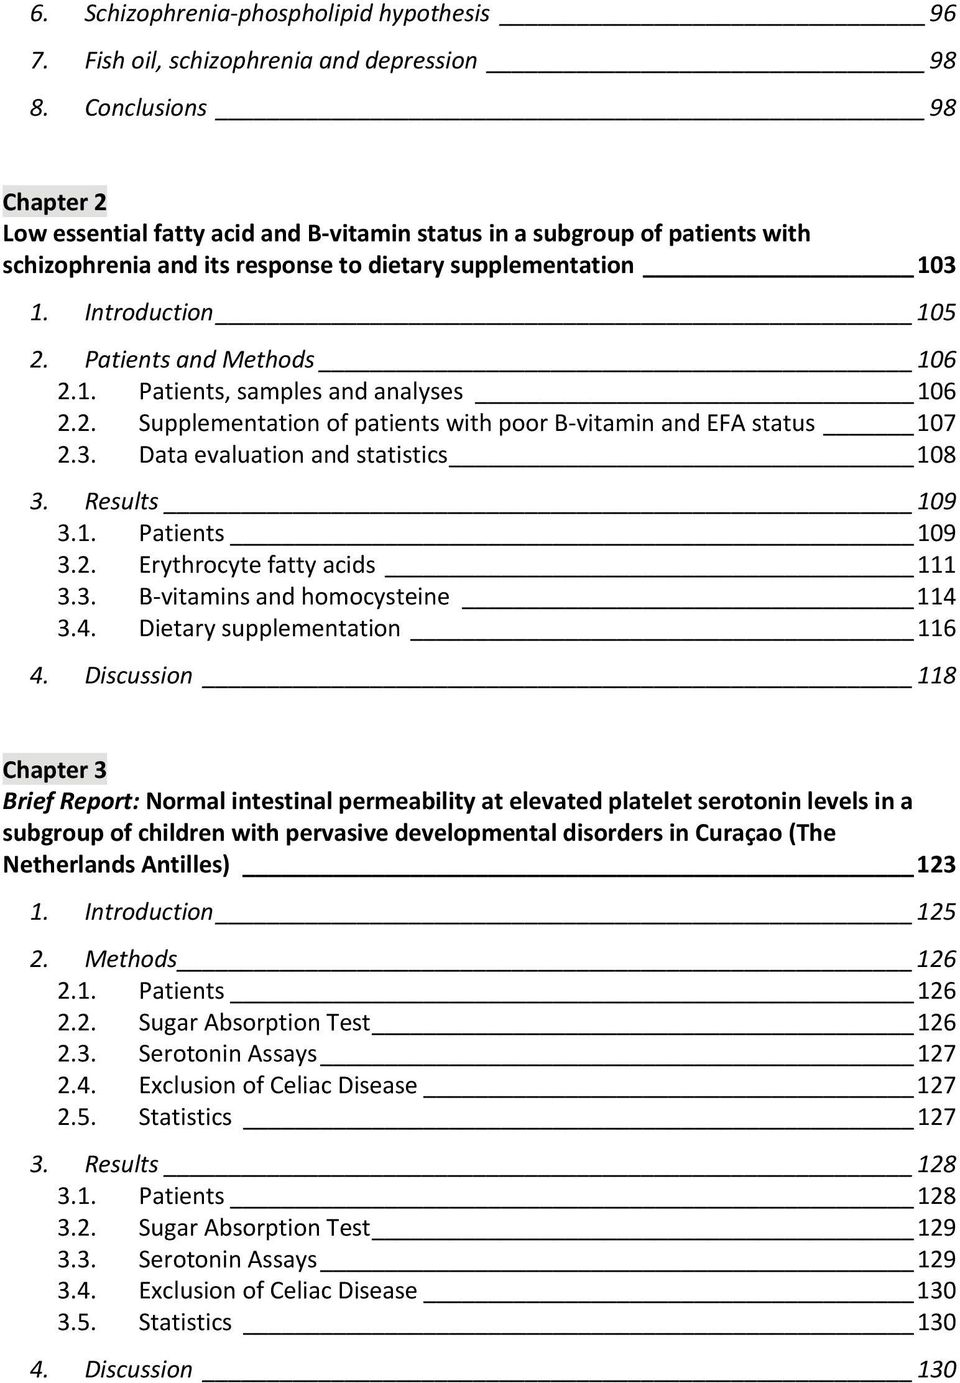 Patients and Methods 106 2.1. Patients, samples and analyses 106 2.2. Supplementation of patients with poor B vitamin and EFA status 107 2.3. Data evaluation and statistics 108 3. Results 109 3.1. Patients 109 3.